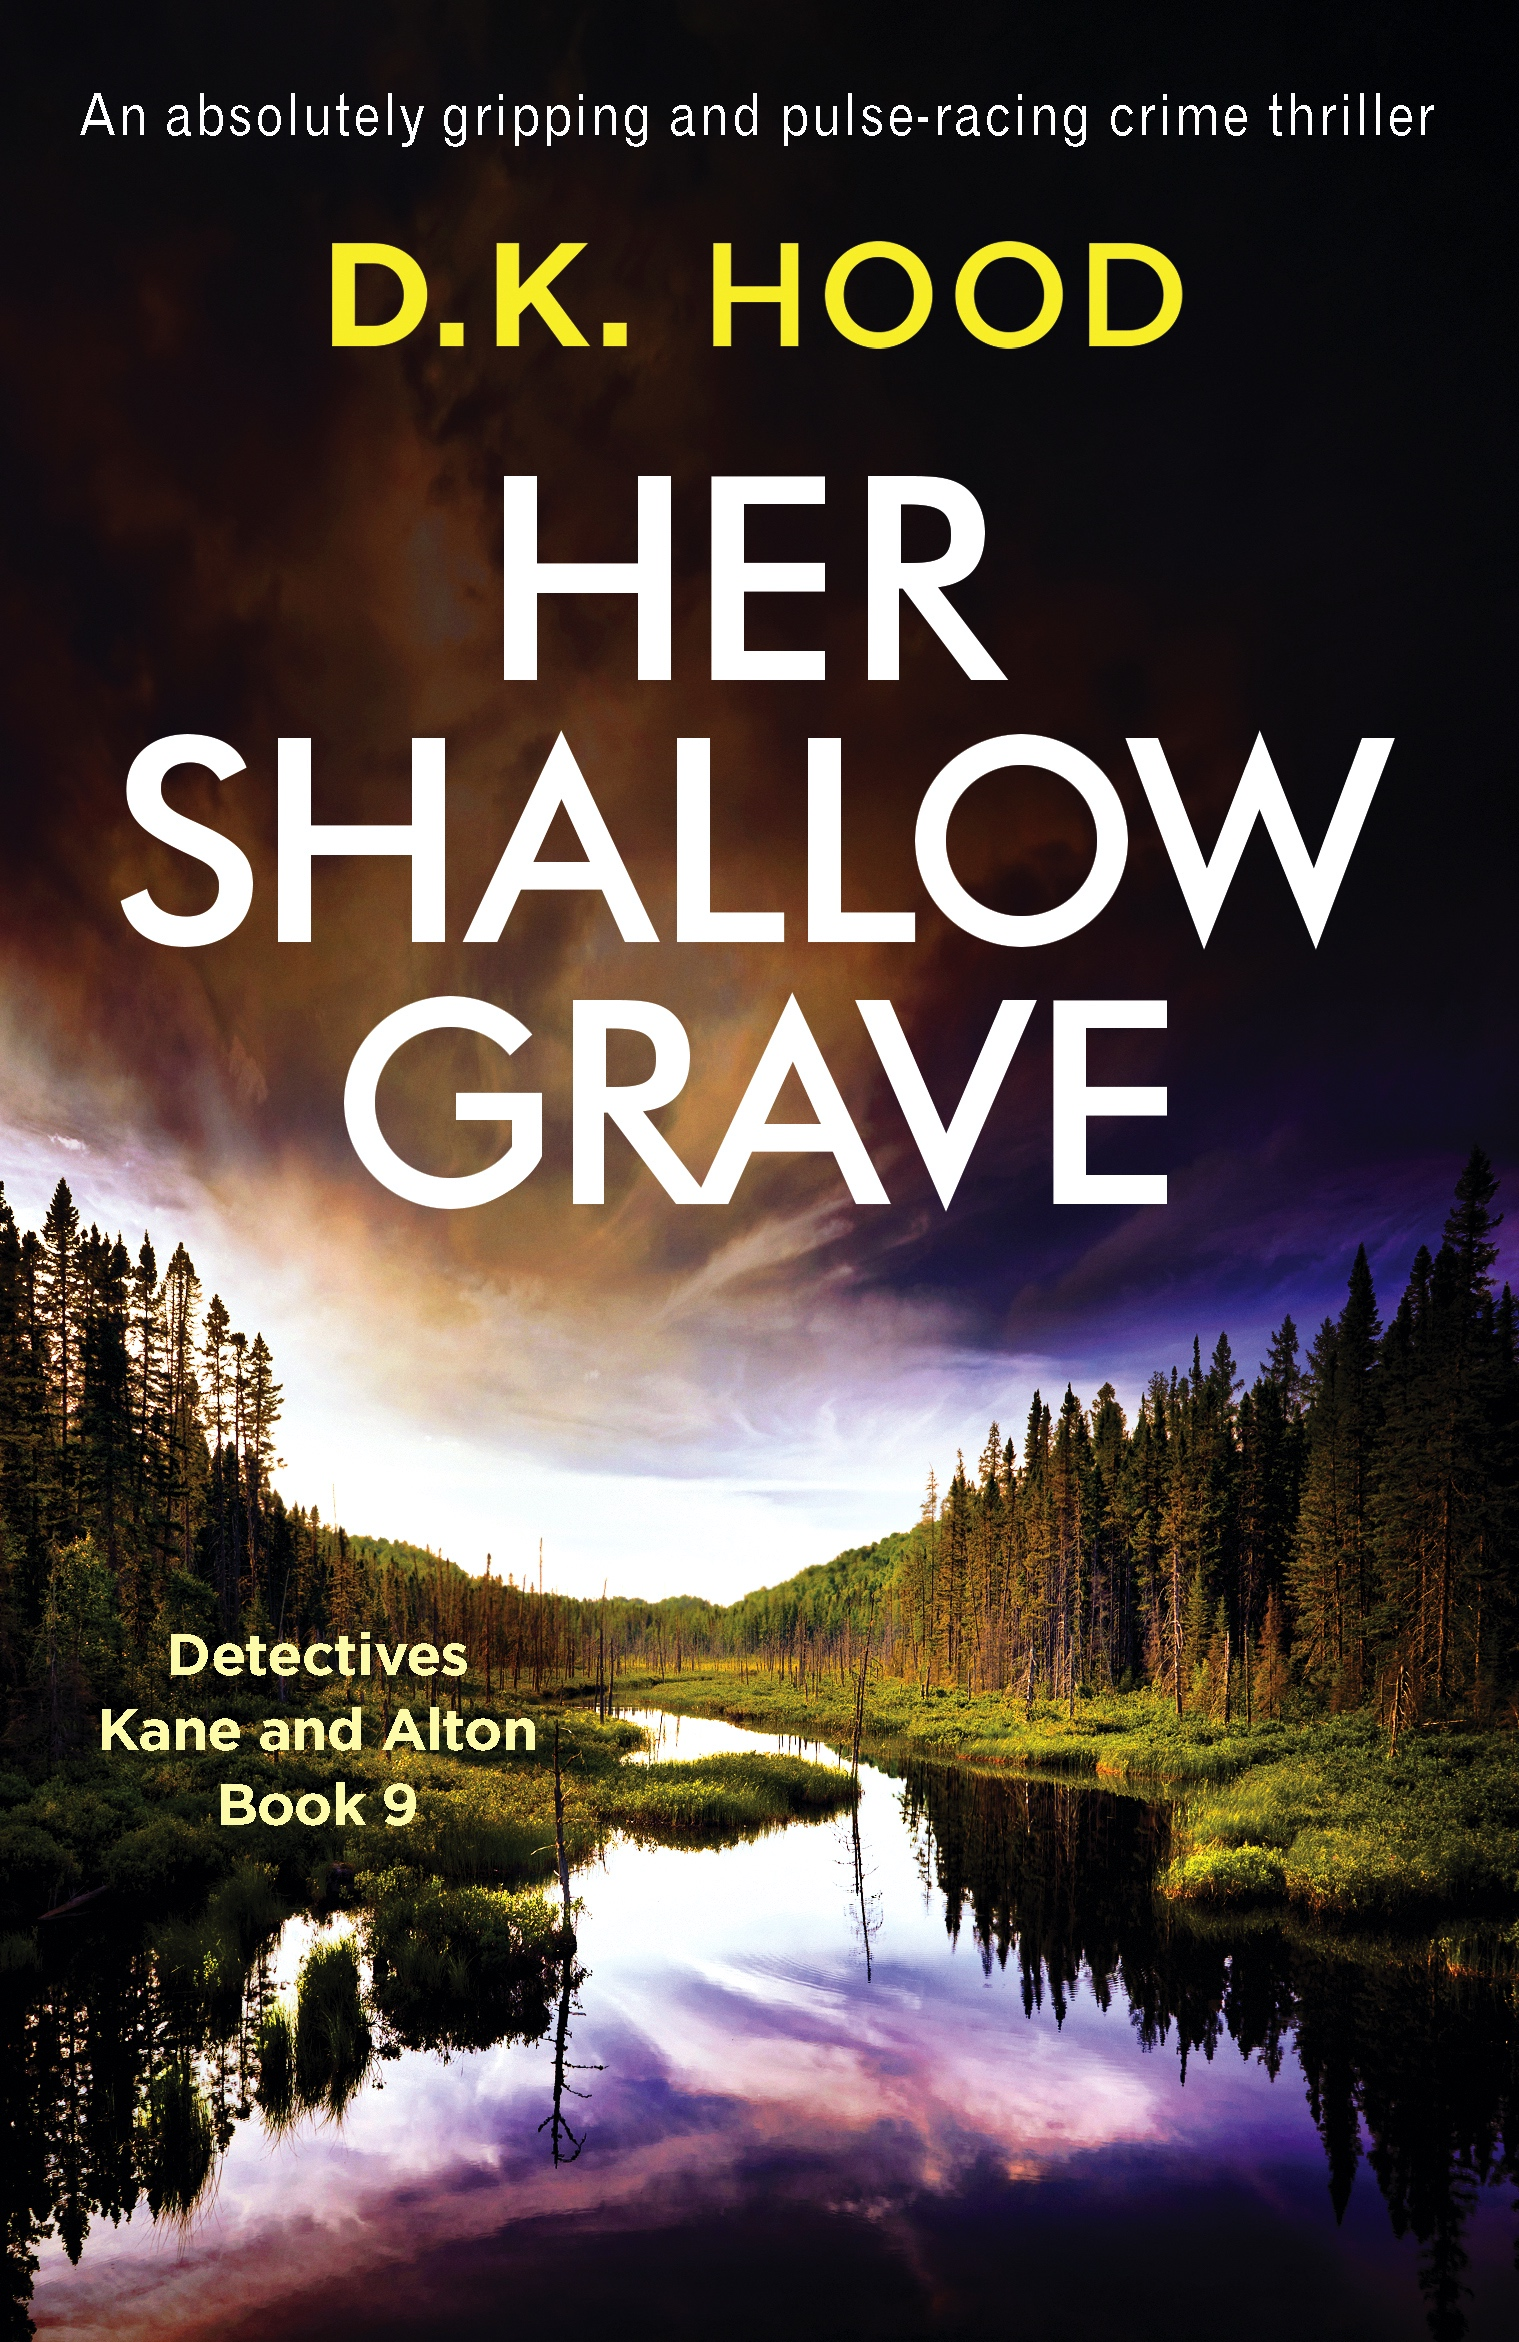 Her Shallow Grave by DK Hood @DKHood_Author @bookouture @nholten40 #BookReview #BlogTour #Book9 #Book629 #NetGalleyCountdown